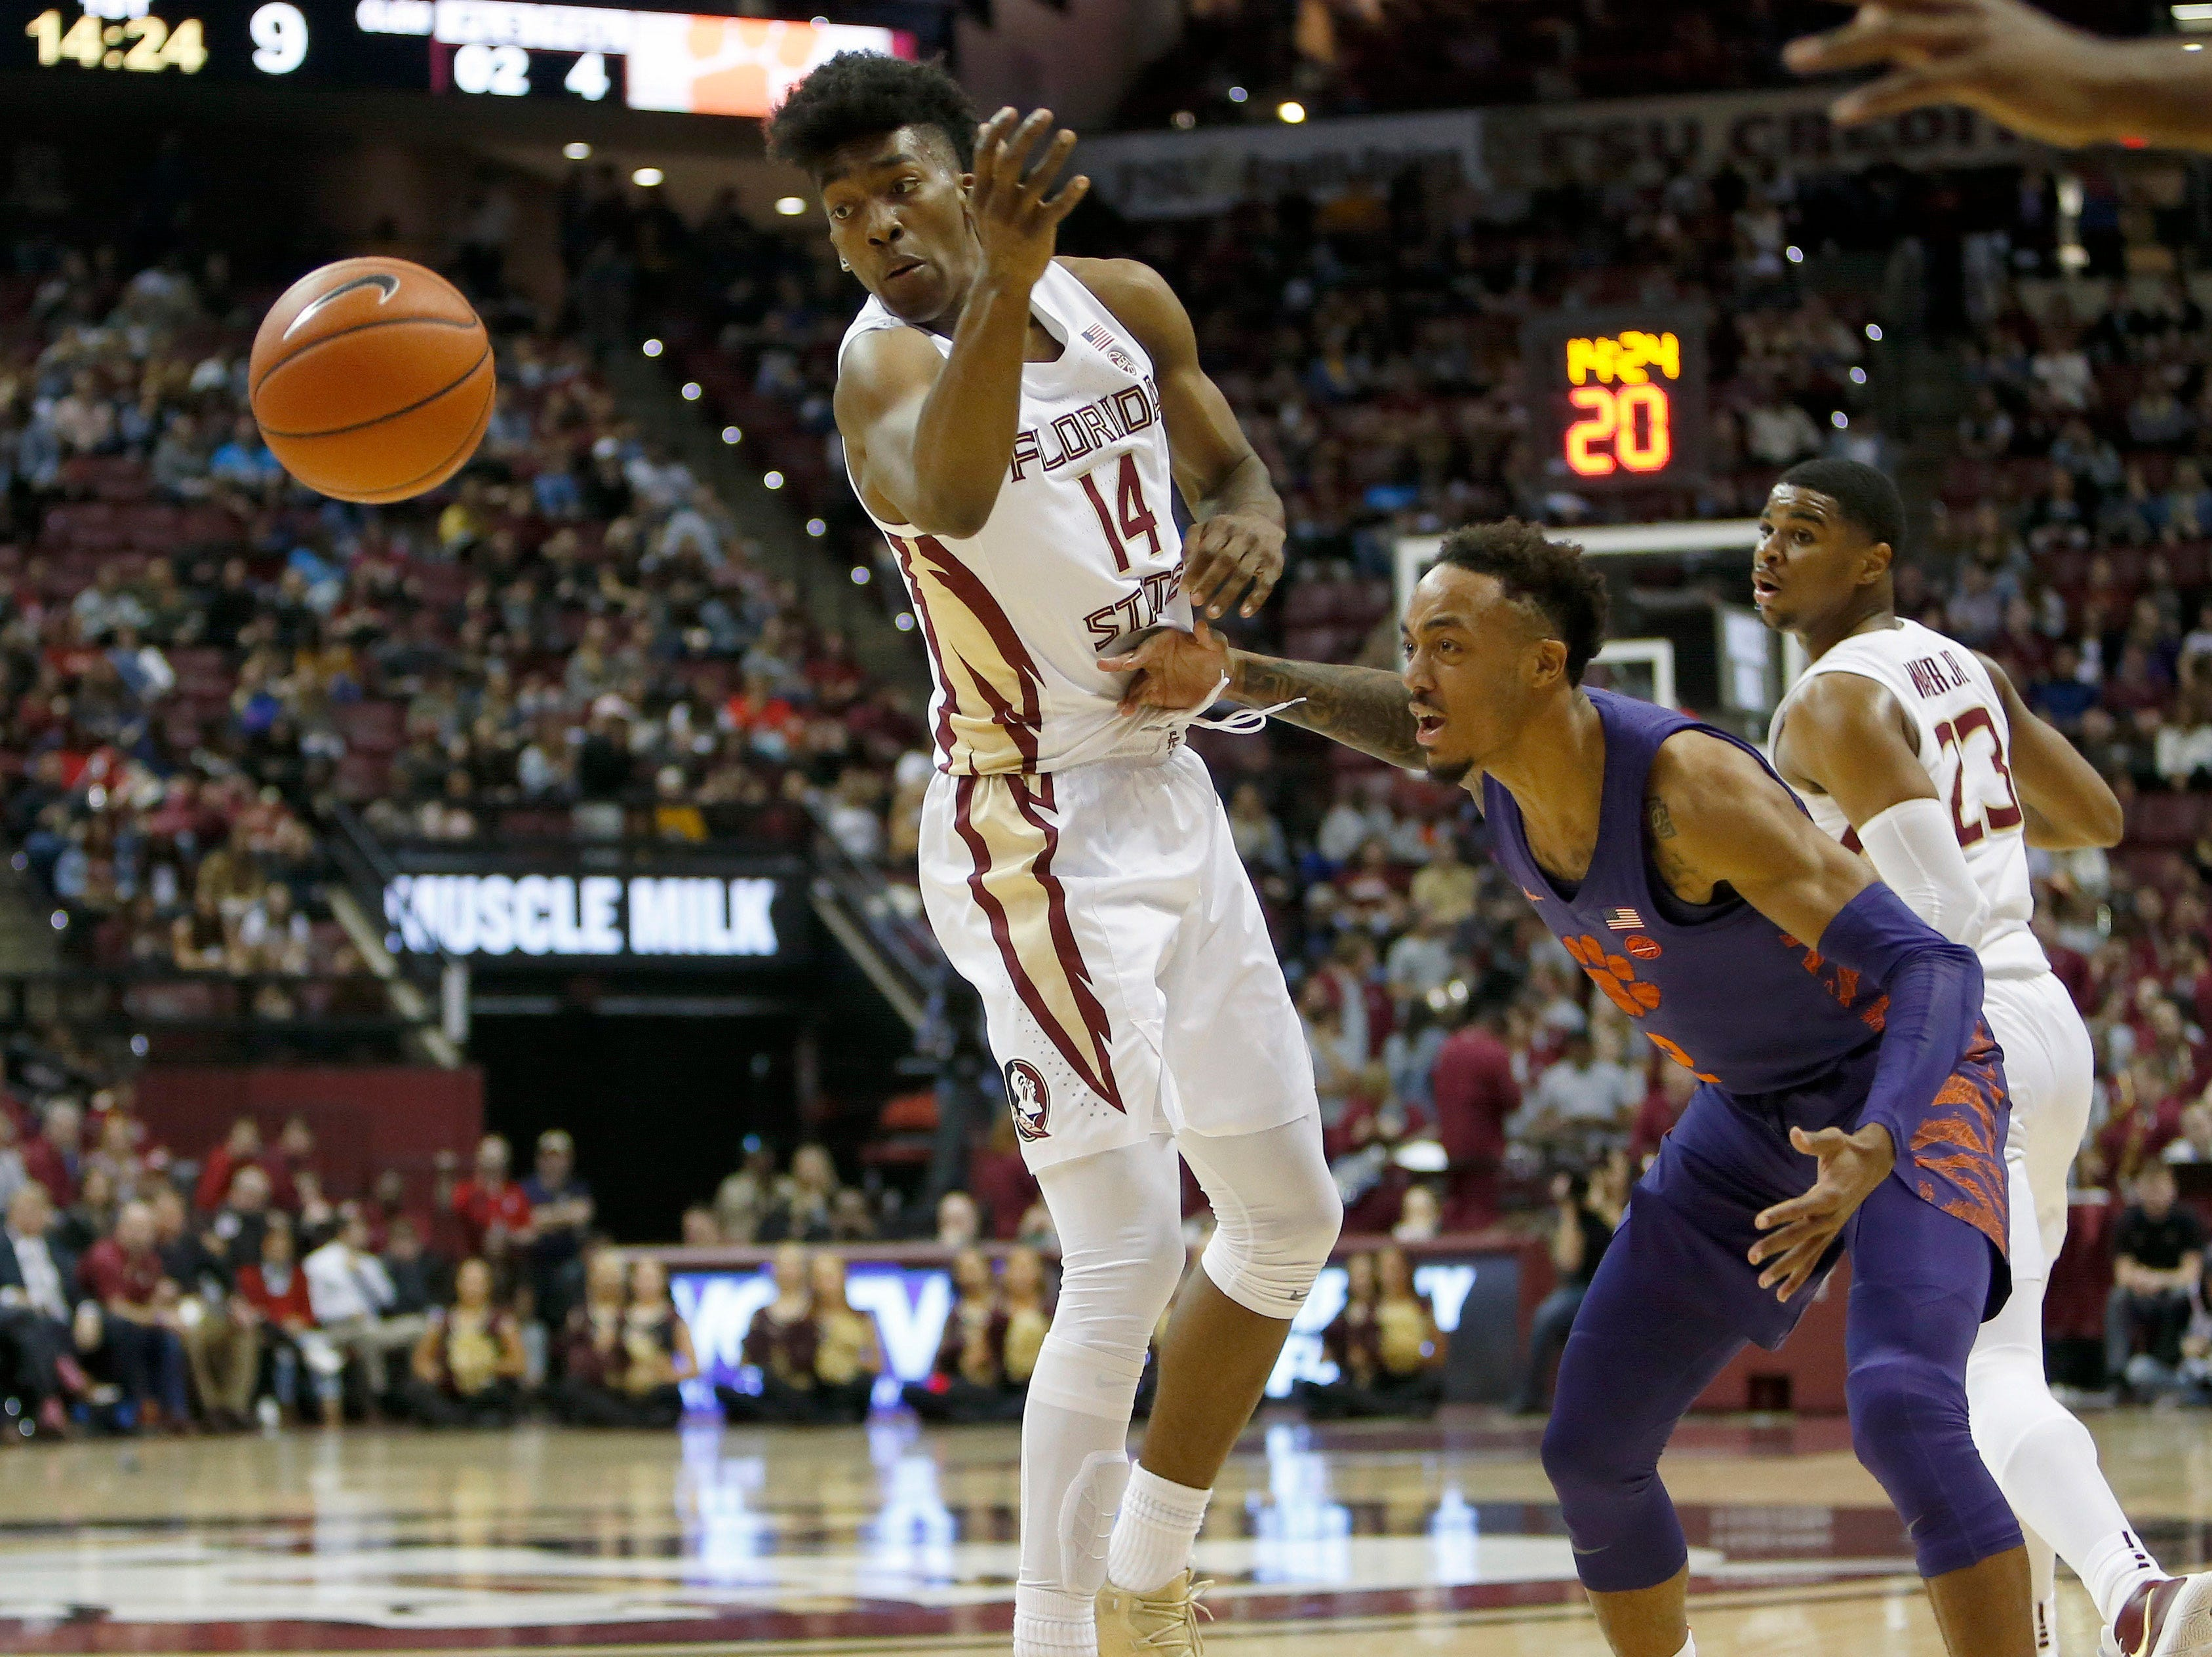 Jan 22, 2019; Tallahassee, FL, USA; Clemson Tigers guard Marcquise Reed (2) passes the ball against Florida State Seminoles guard Terance Mann (14) during the first half at Donald L. Tucker Center. Mandatory Credit: Glenn Beil-USA TODAY Sports